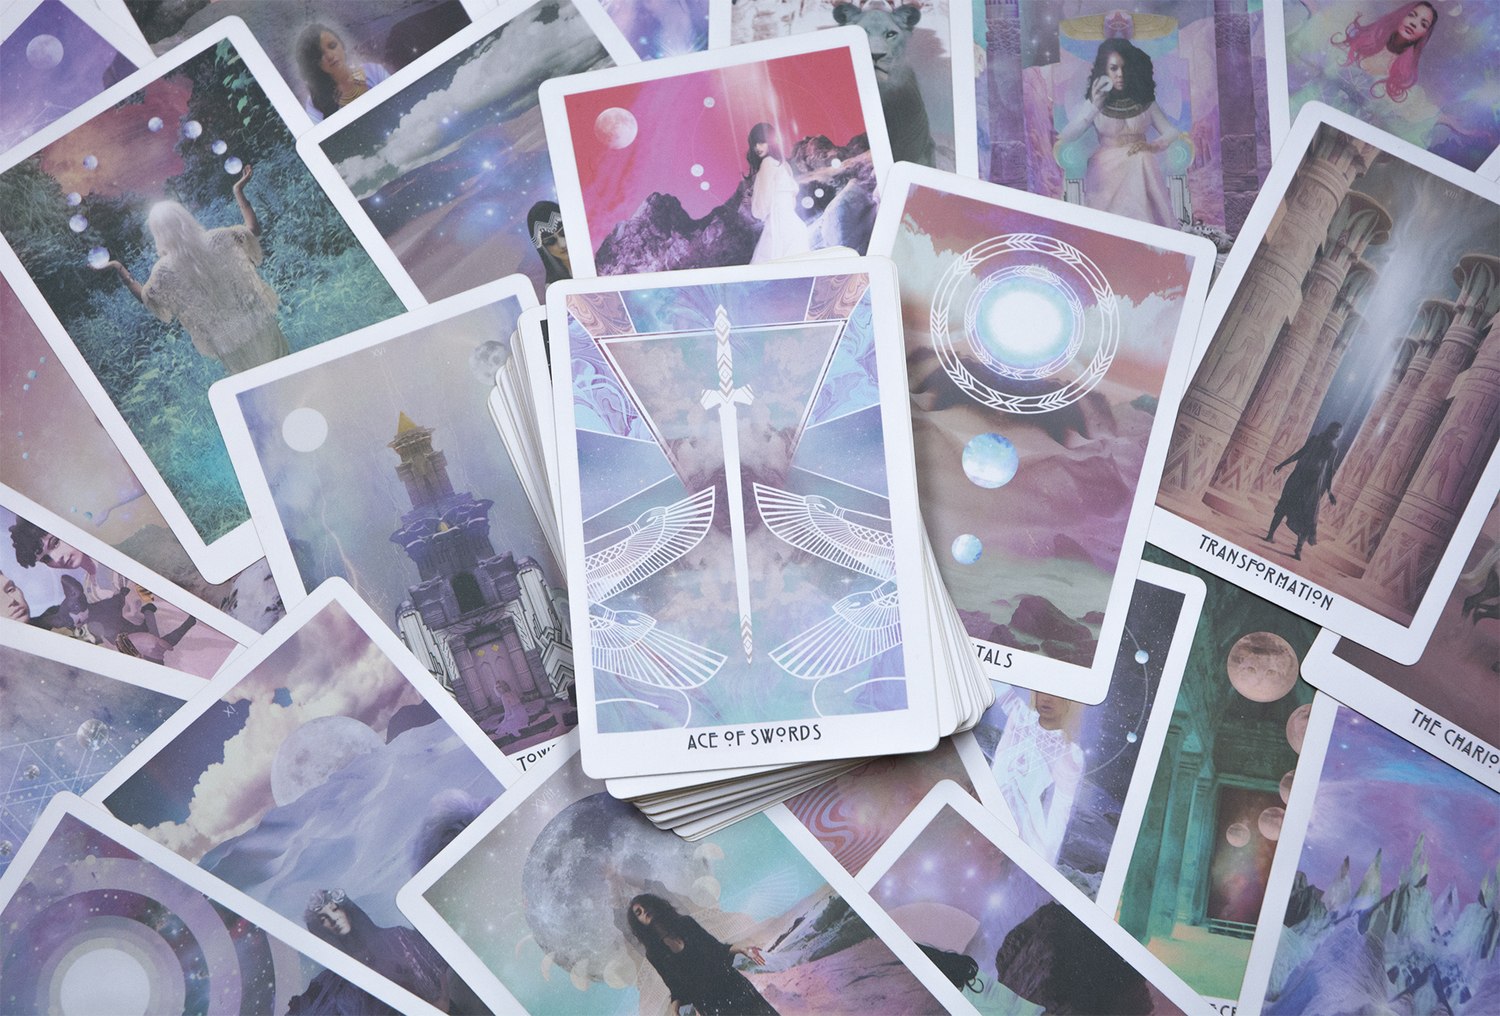 The Starchild Tarot Deck displayed on a table.